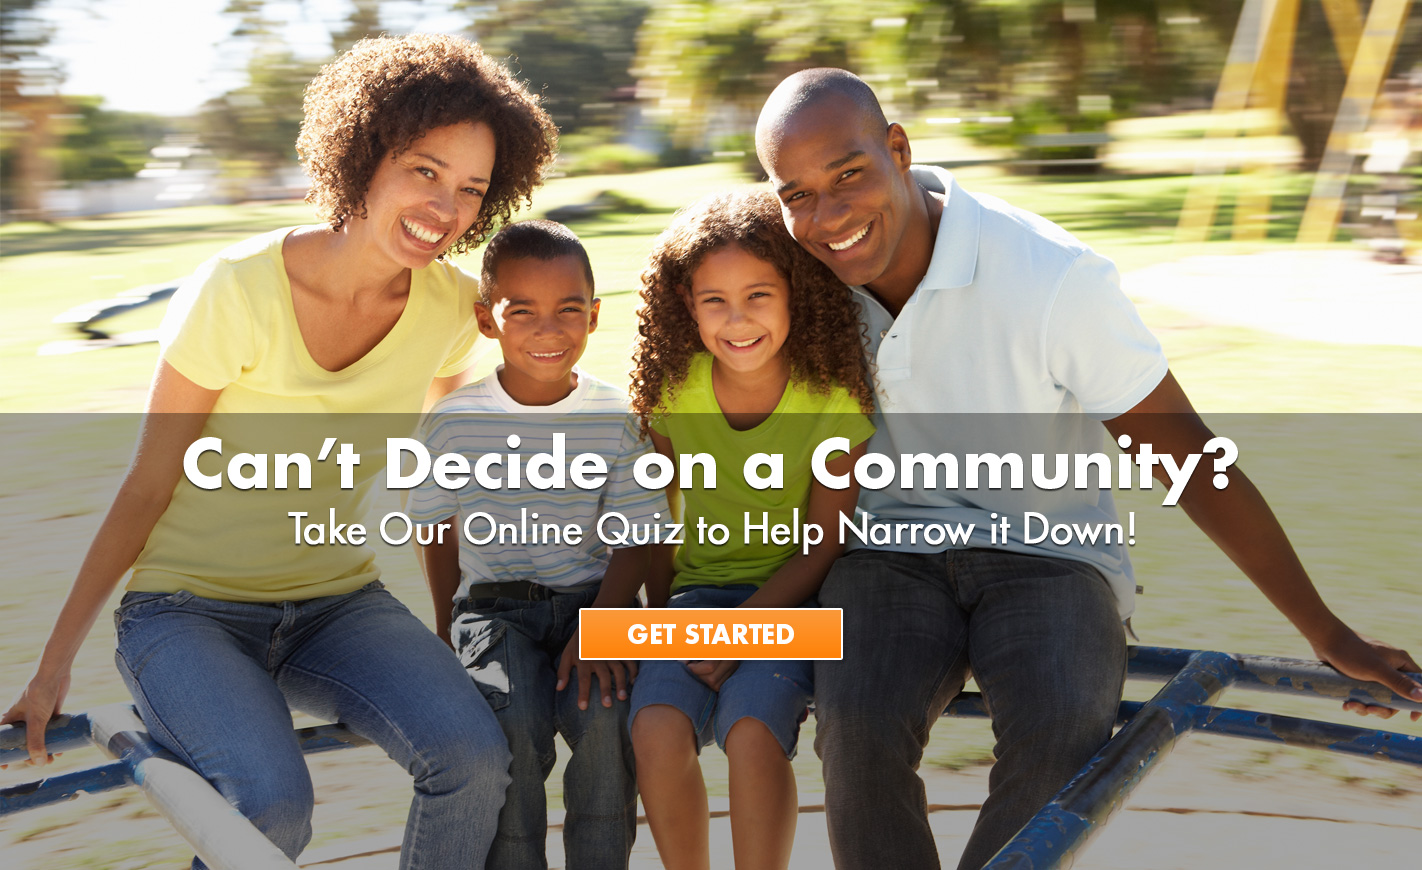 Take Our Online Quiz to Narrow Down Your Community Choices